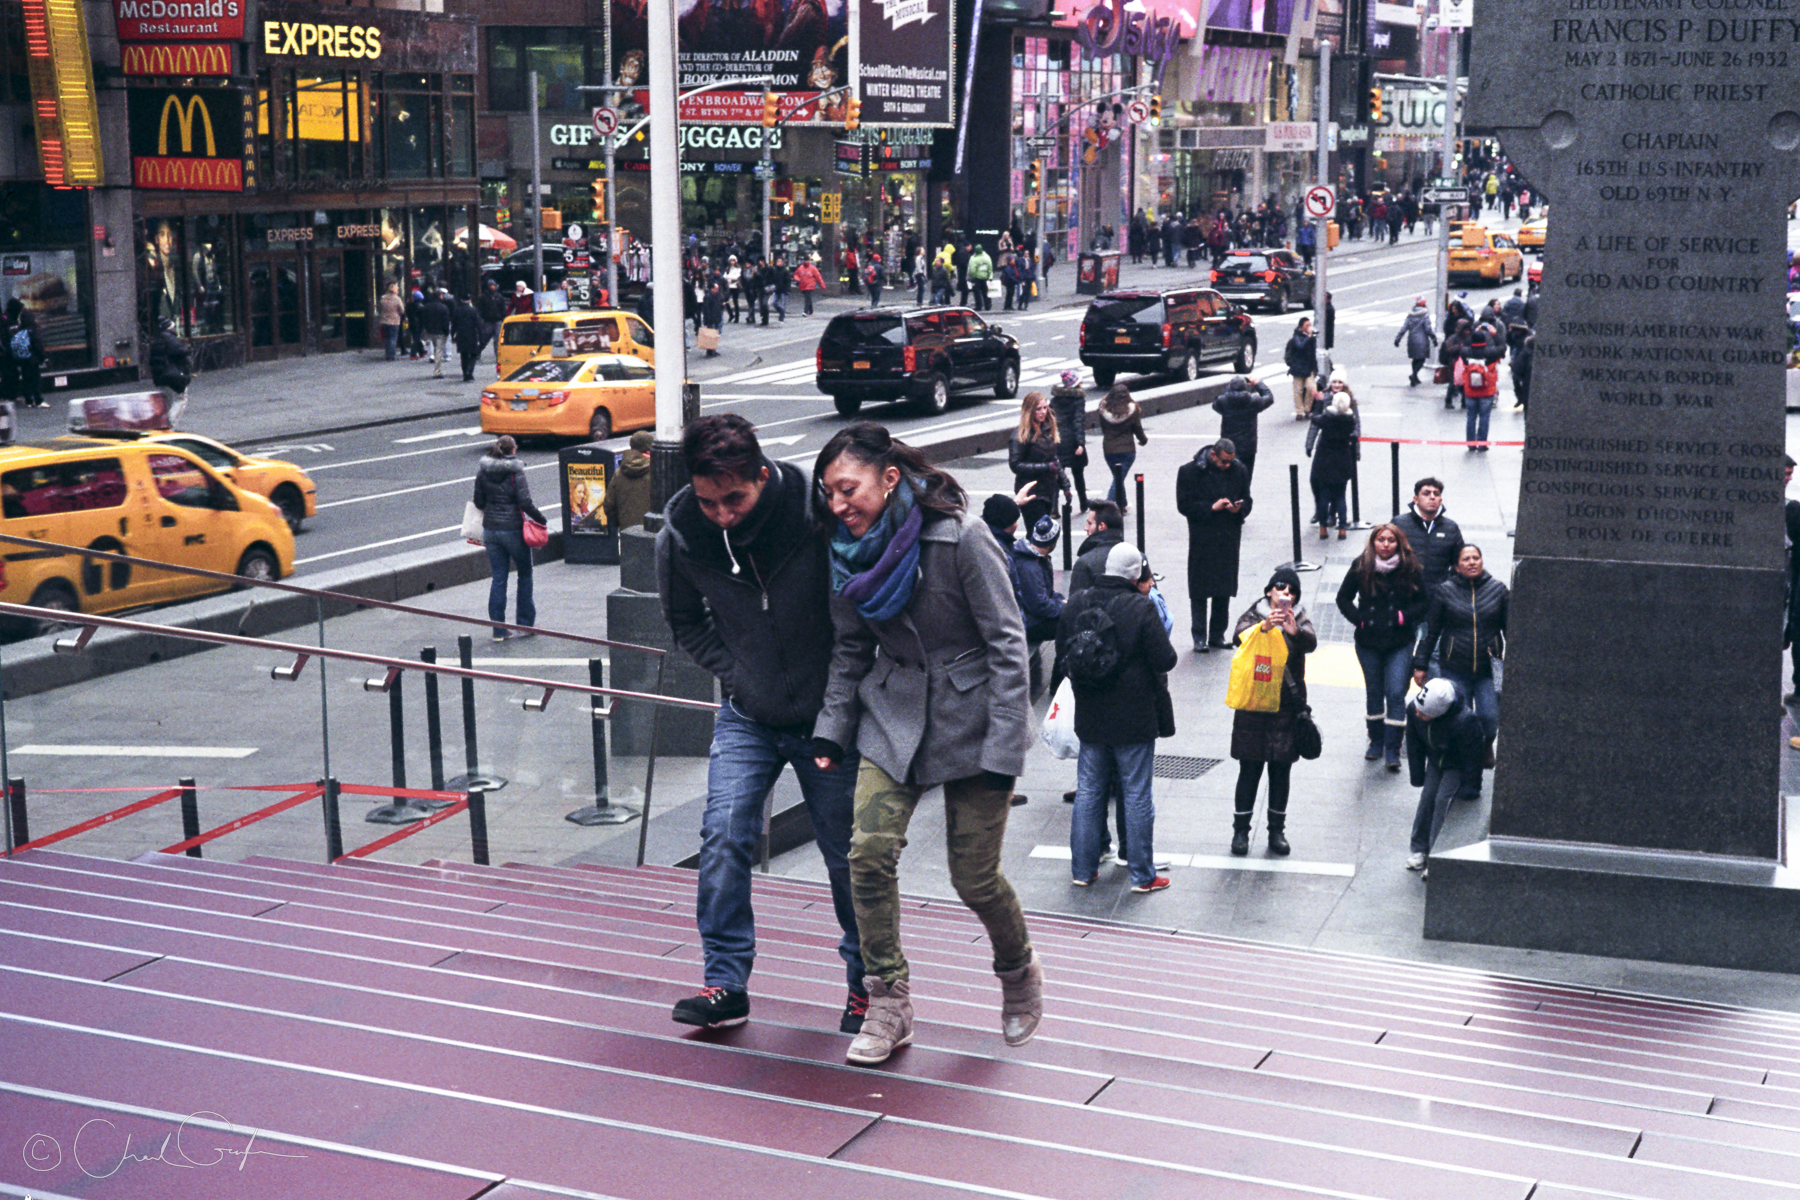 Times Square Tourists Walking Up TDK Steps NYC (Image by Chad Gayle)